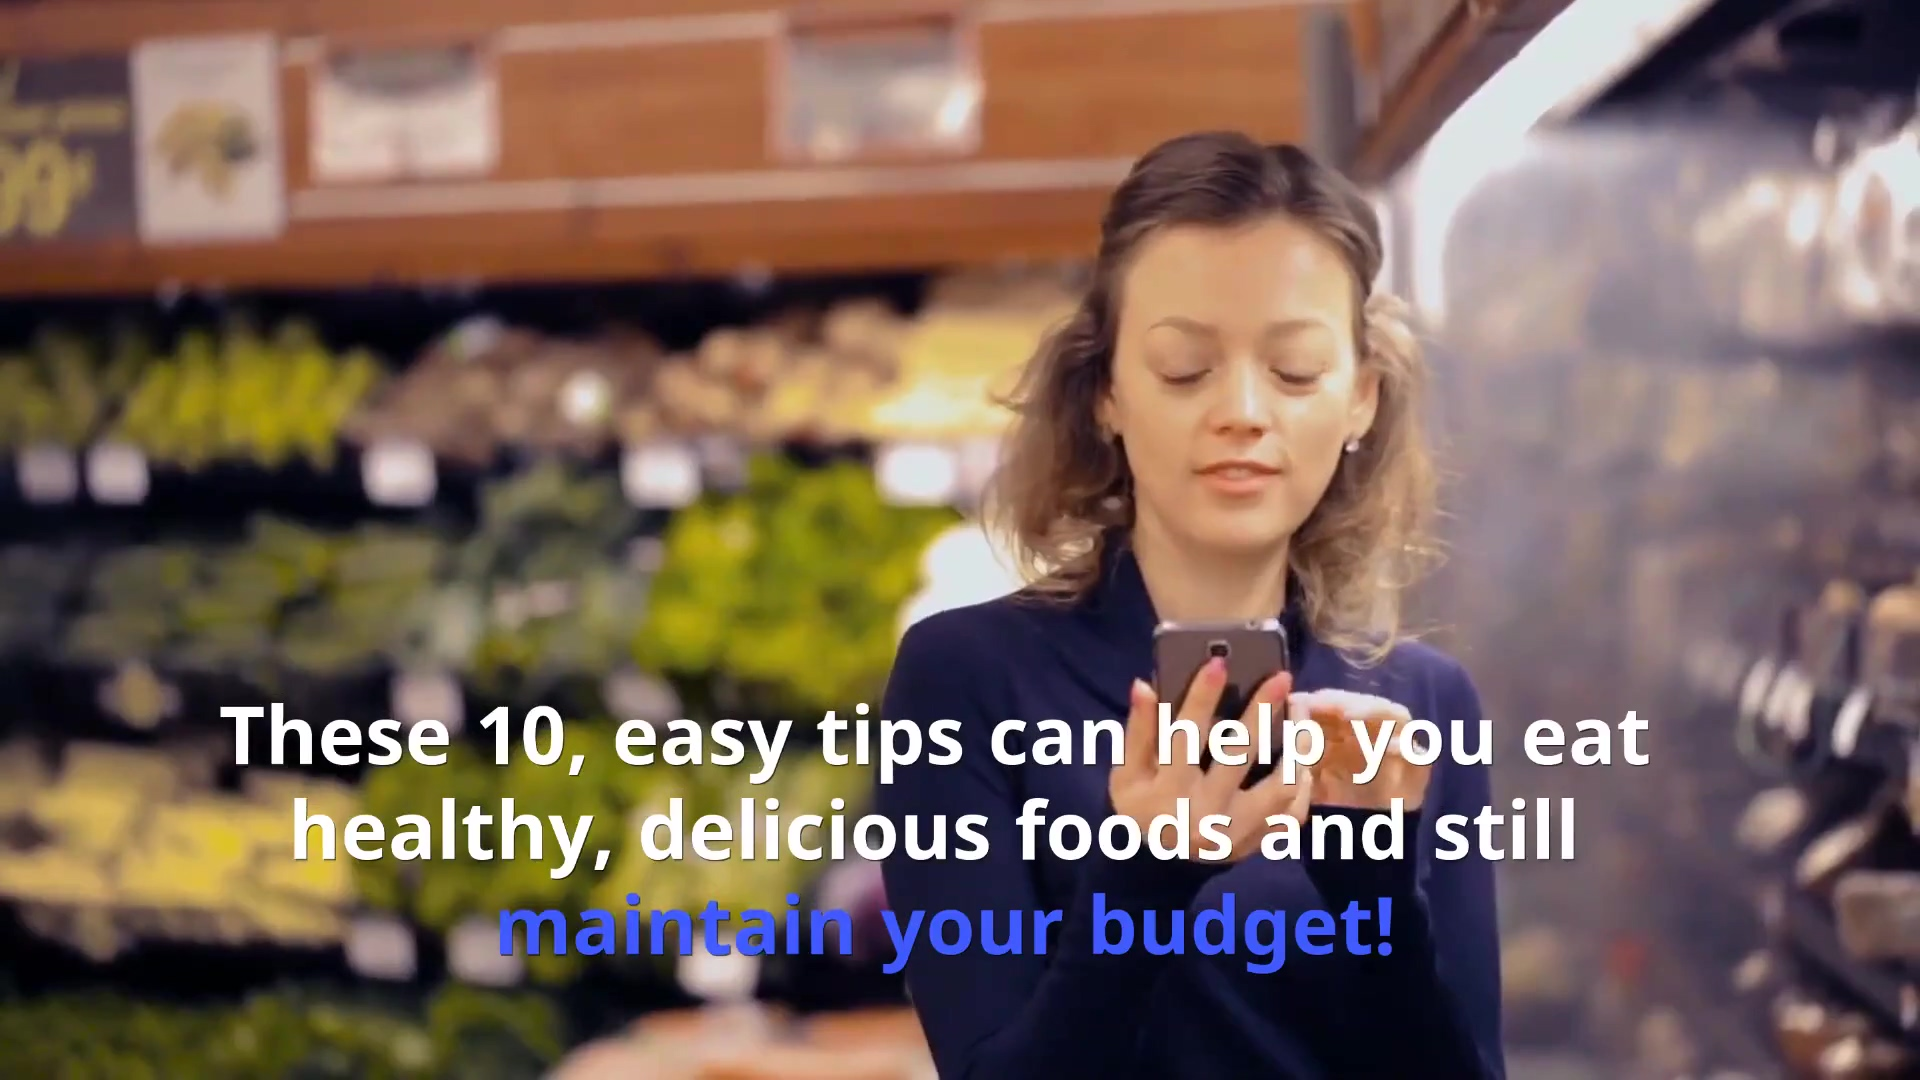 healthy-eating-on-budget(matrix)